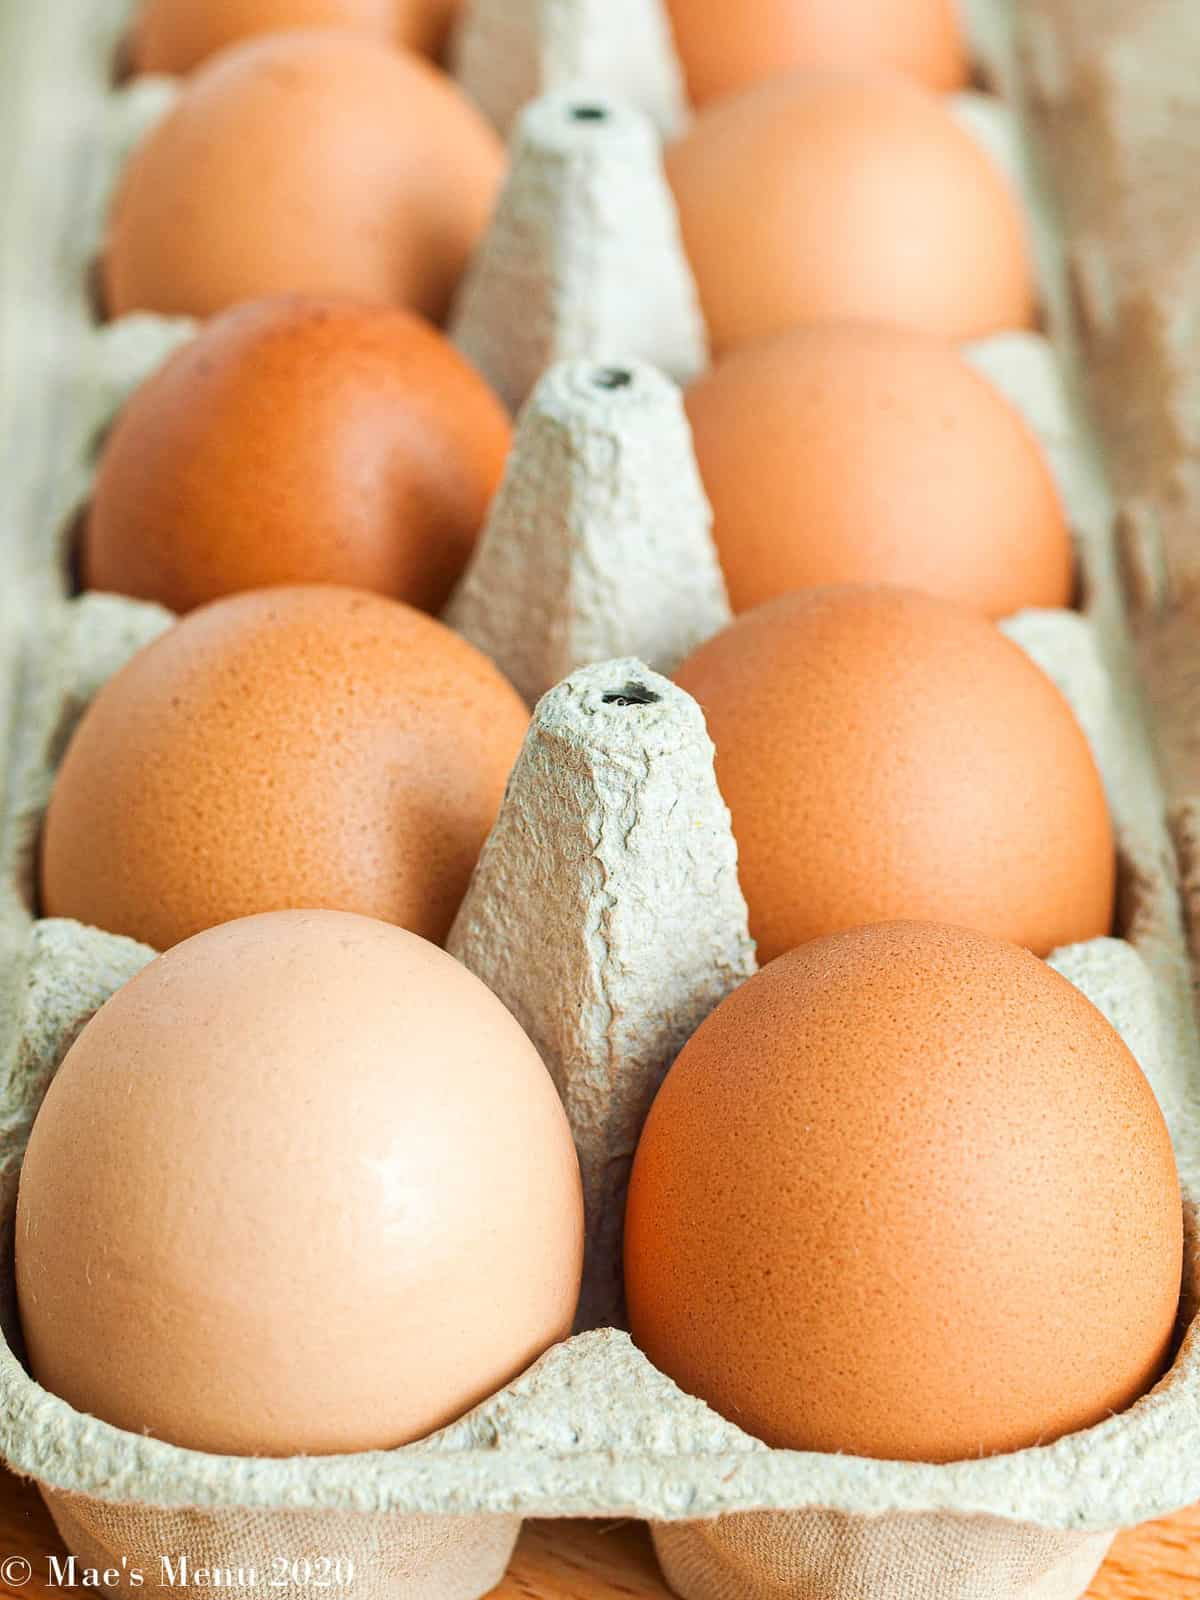 A side angle shot of a crate of brown eggs